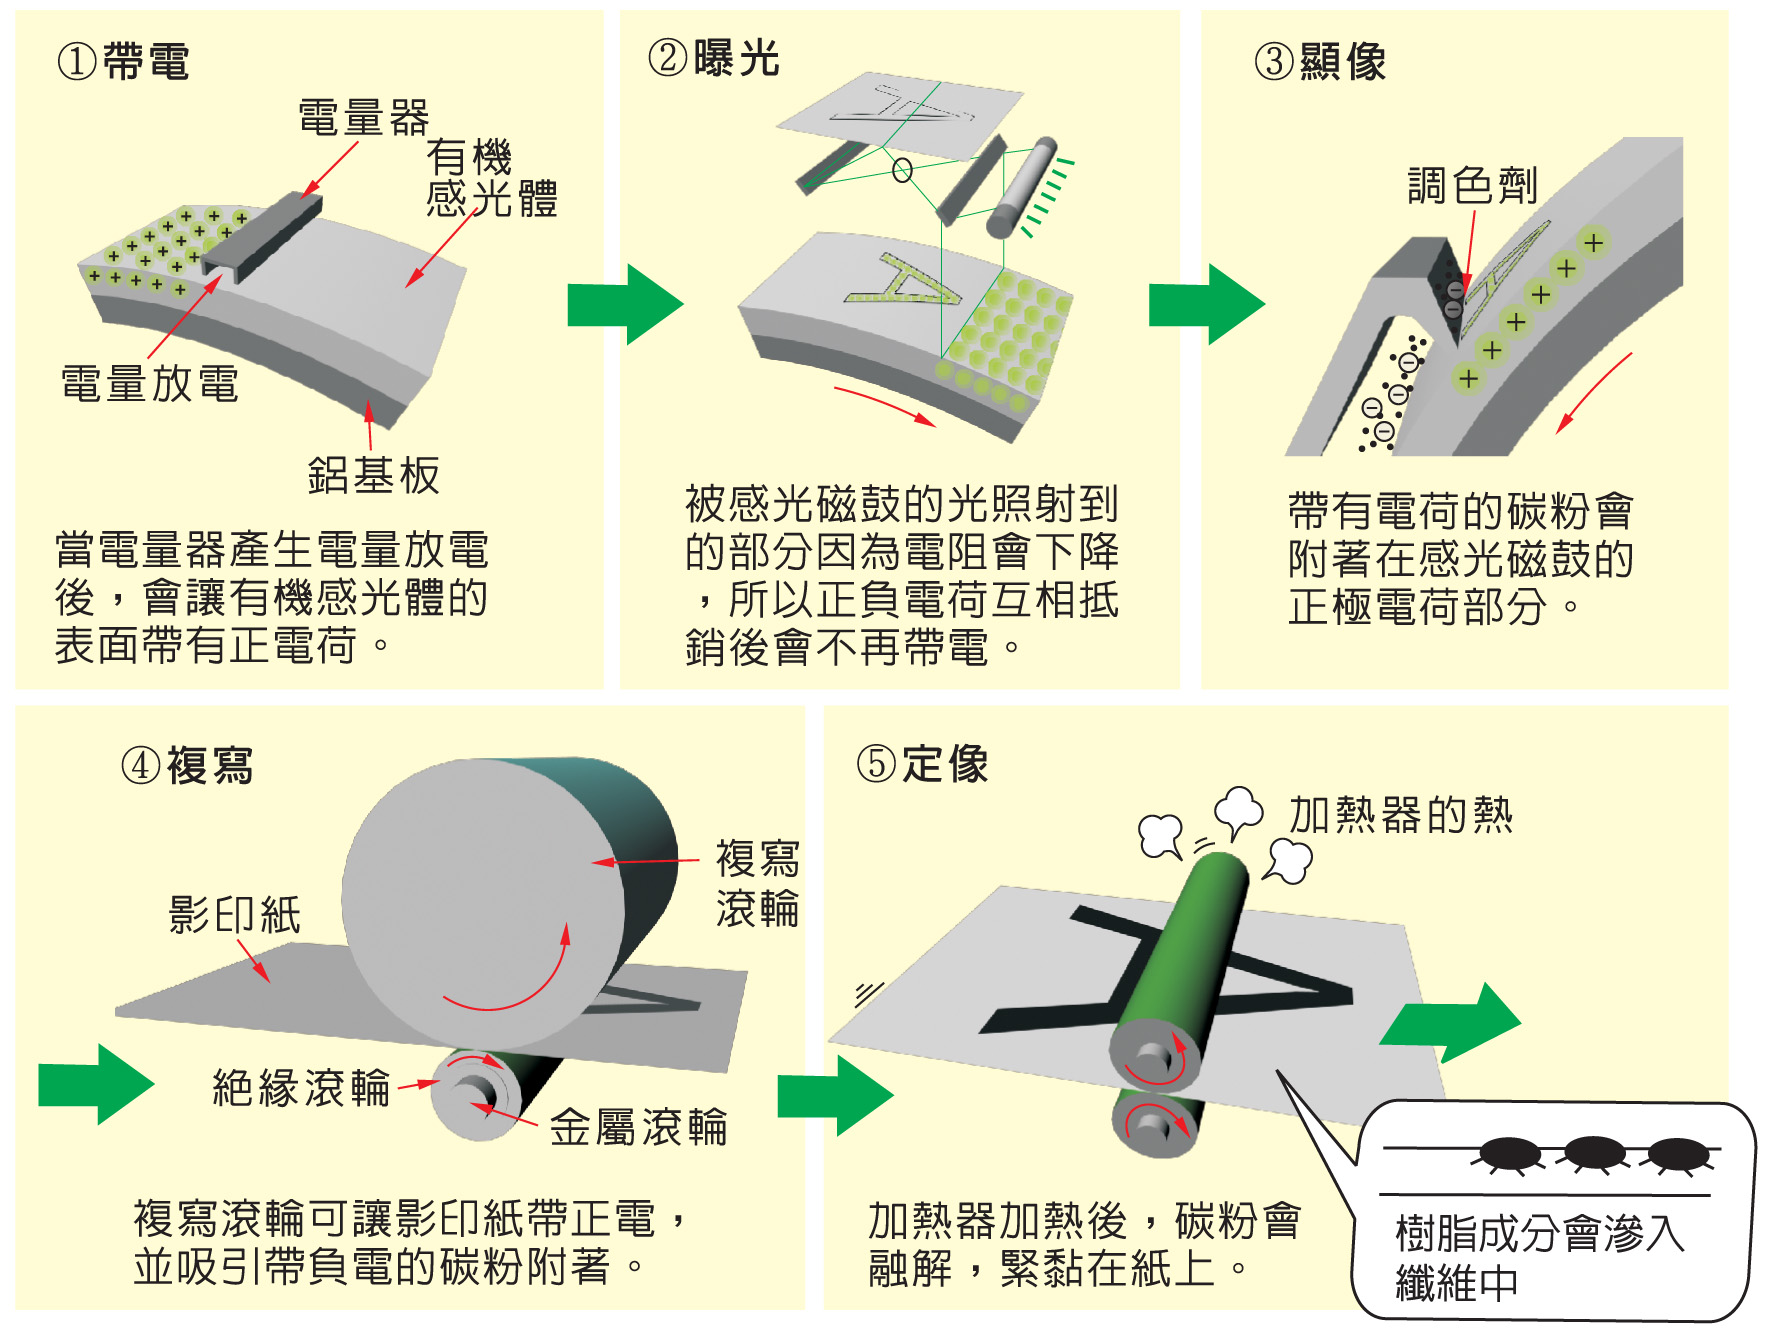 """<p style=""""text-align: left;""""><span style=""""font-size:24px;""""><strong>影印機原理</strong></span></p>"""